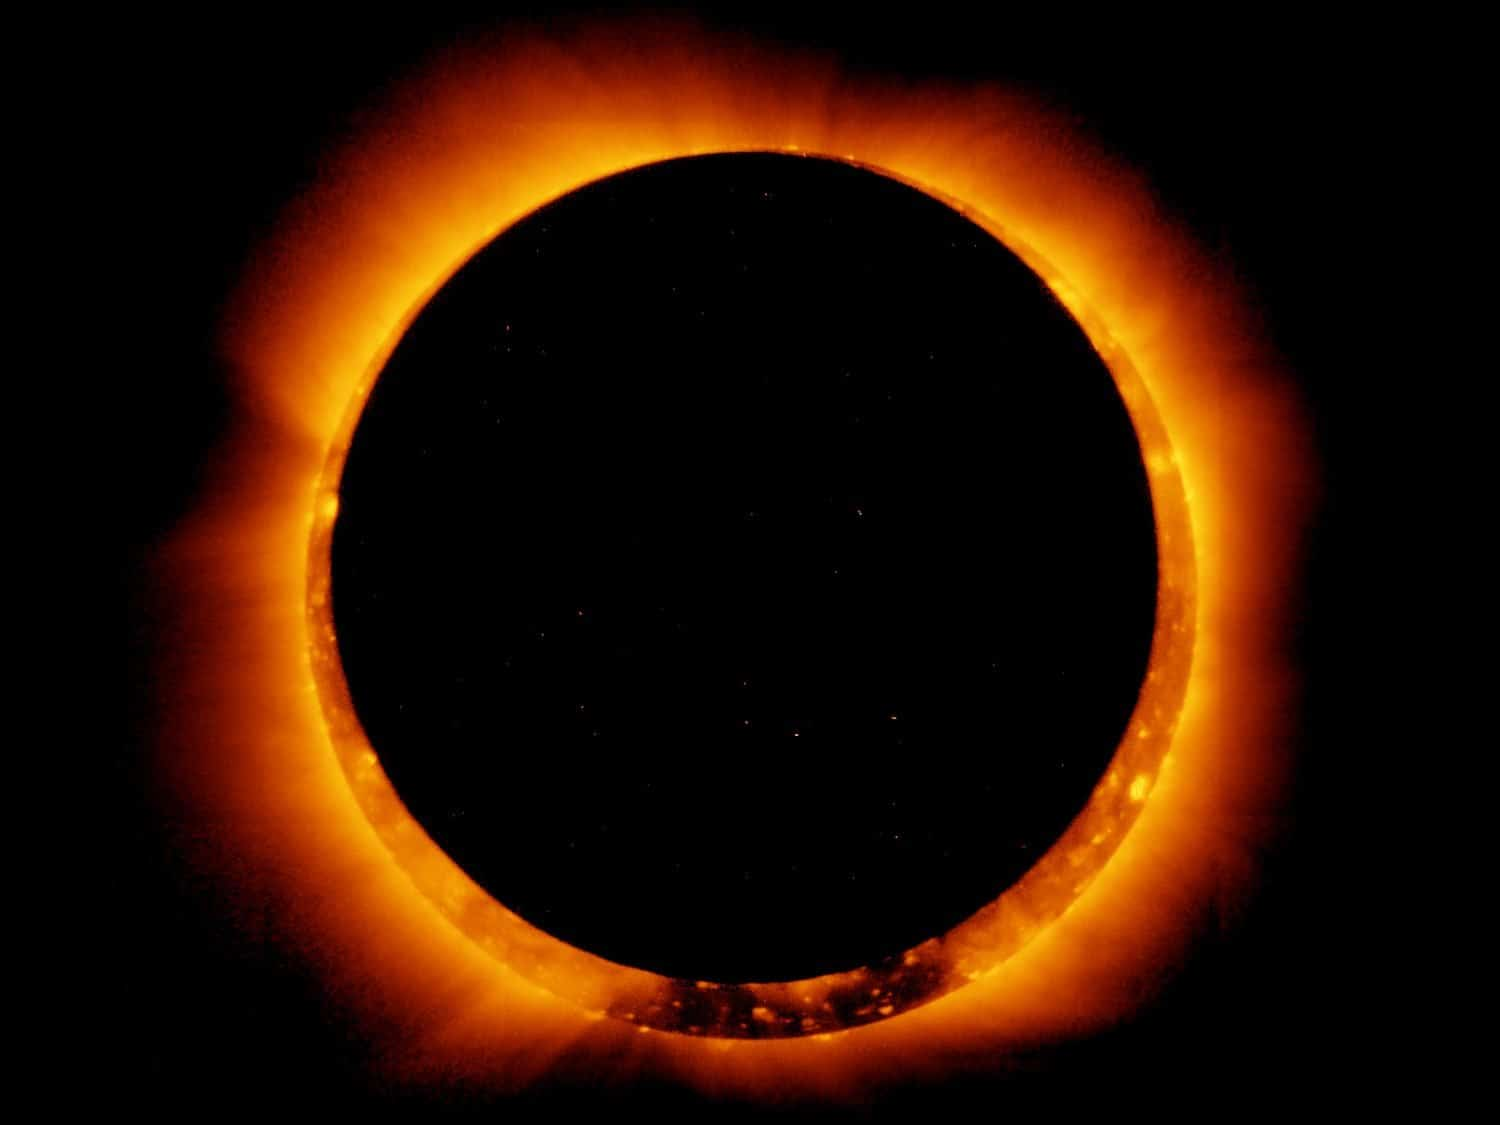 Annular Solar Eclipse - NASA via Flickr